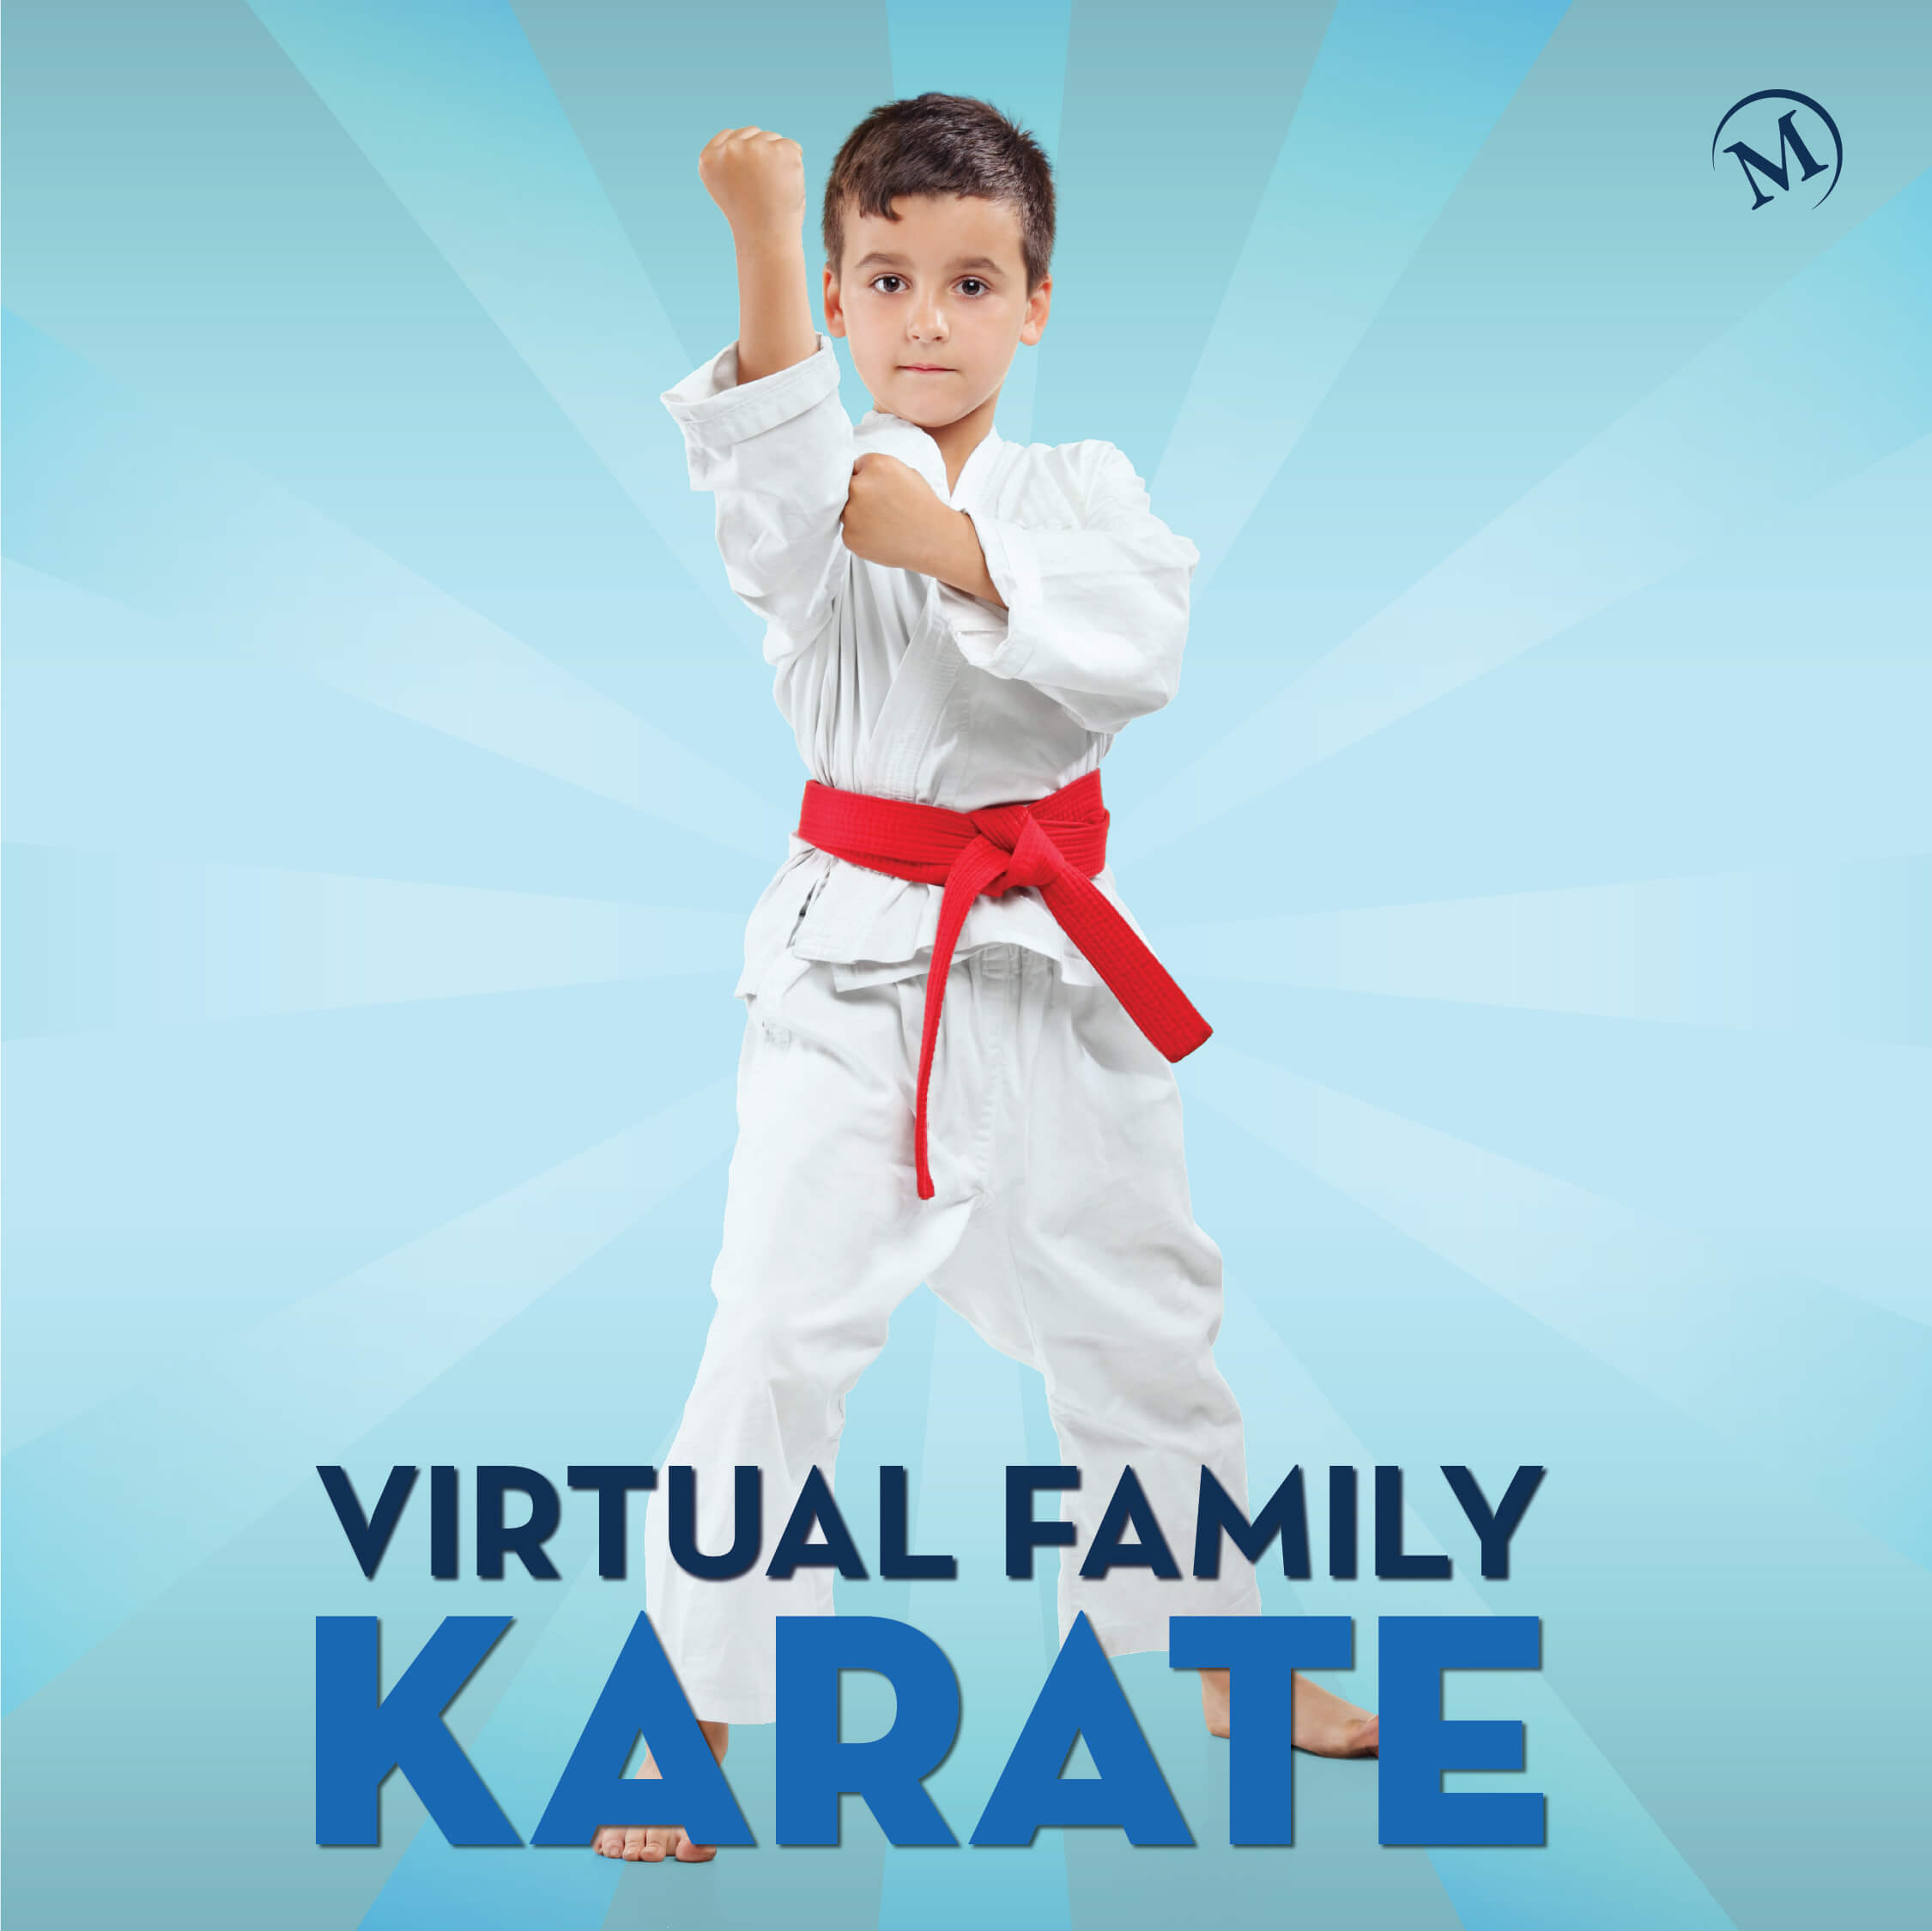 Virtual Family Karate Camp featured image